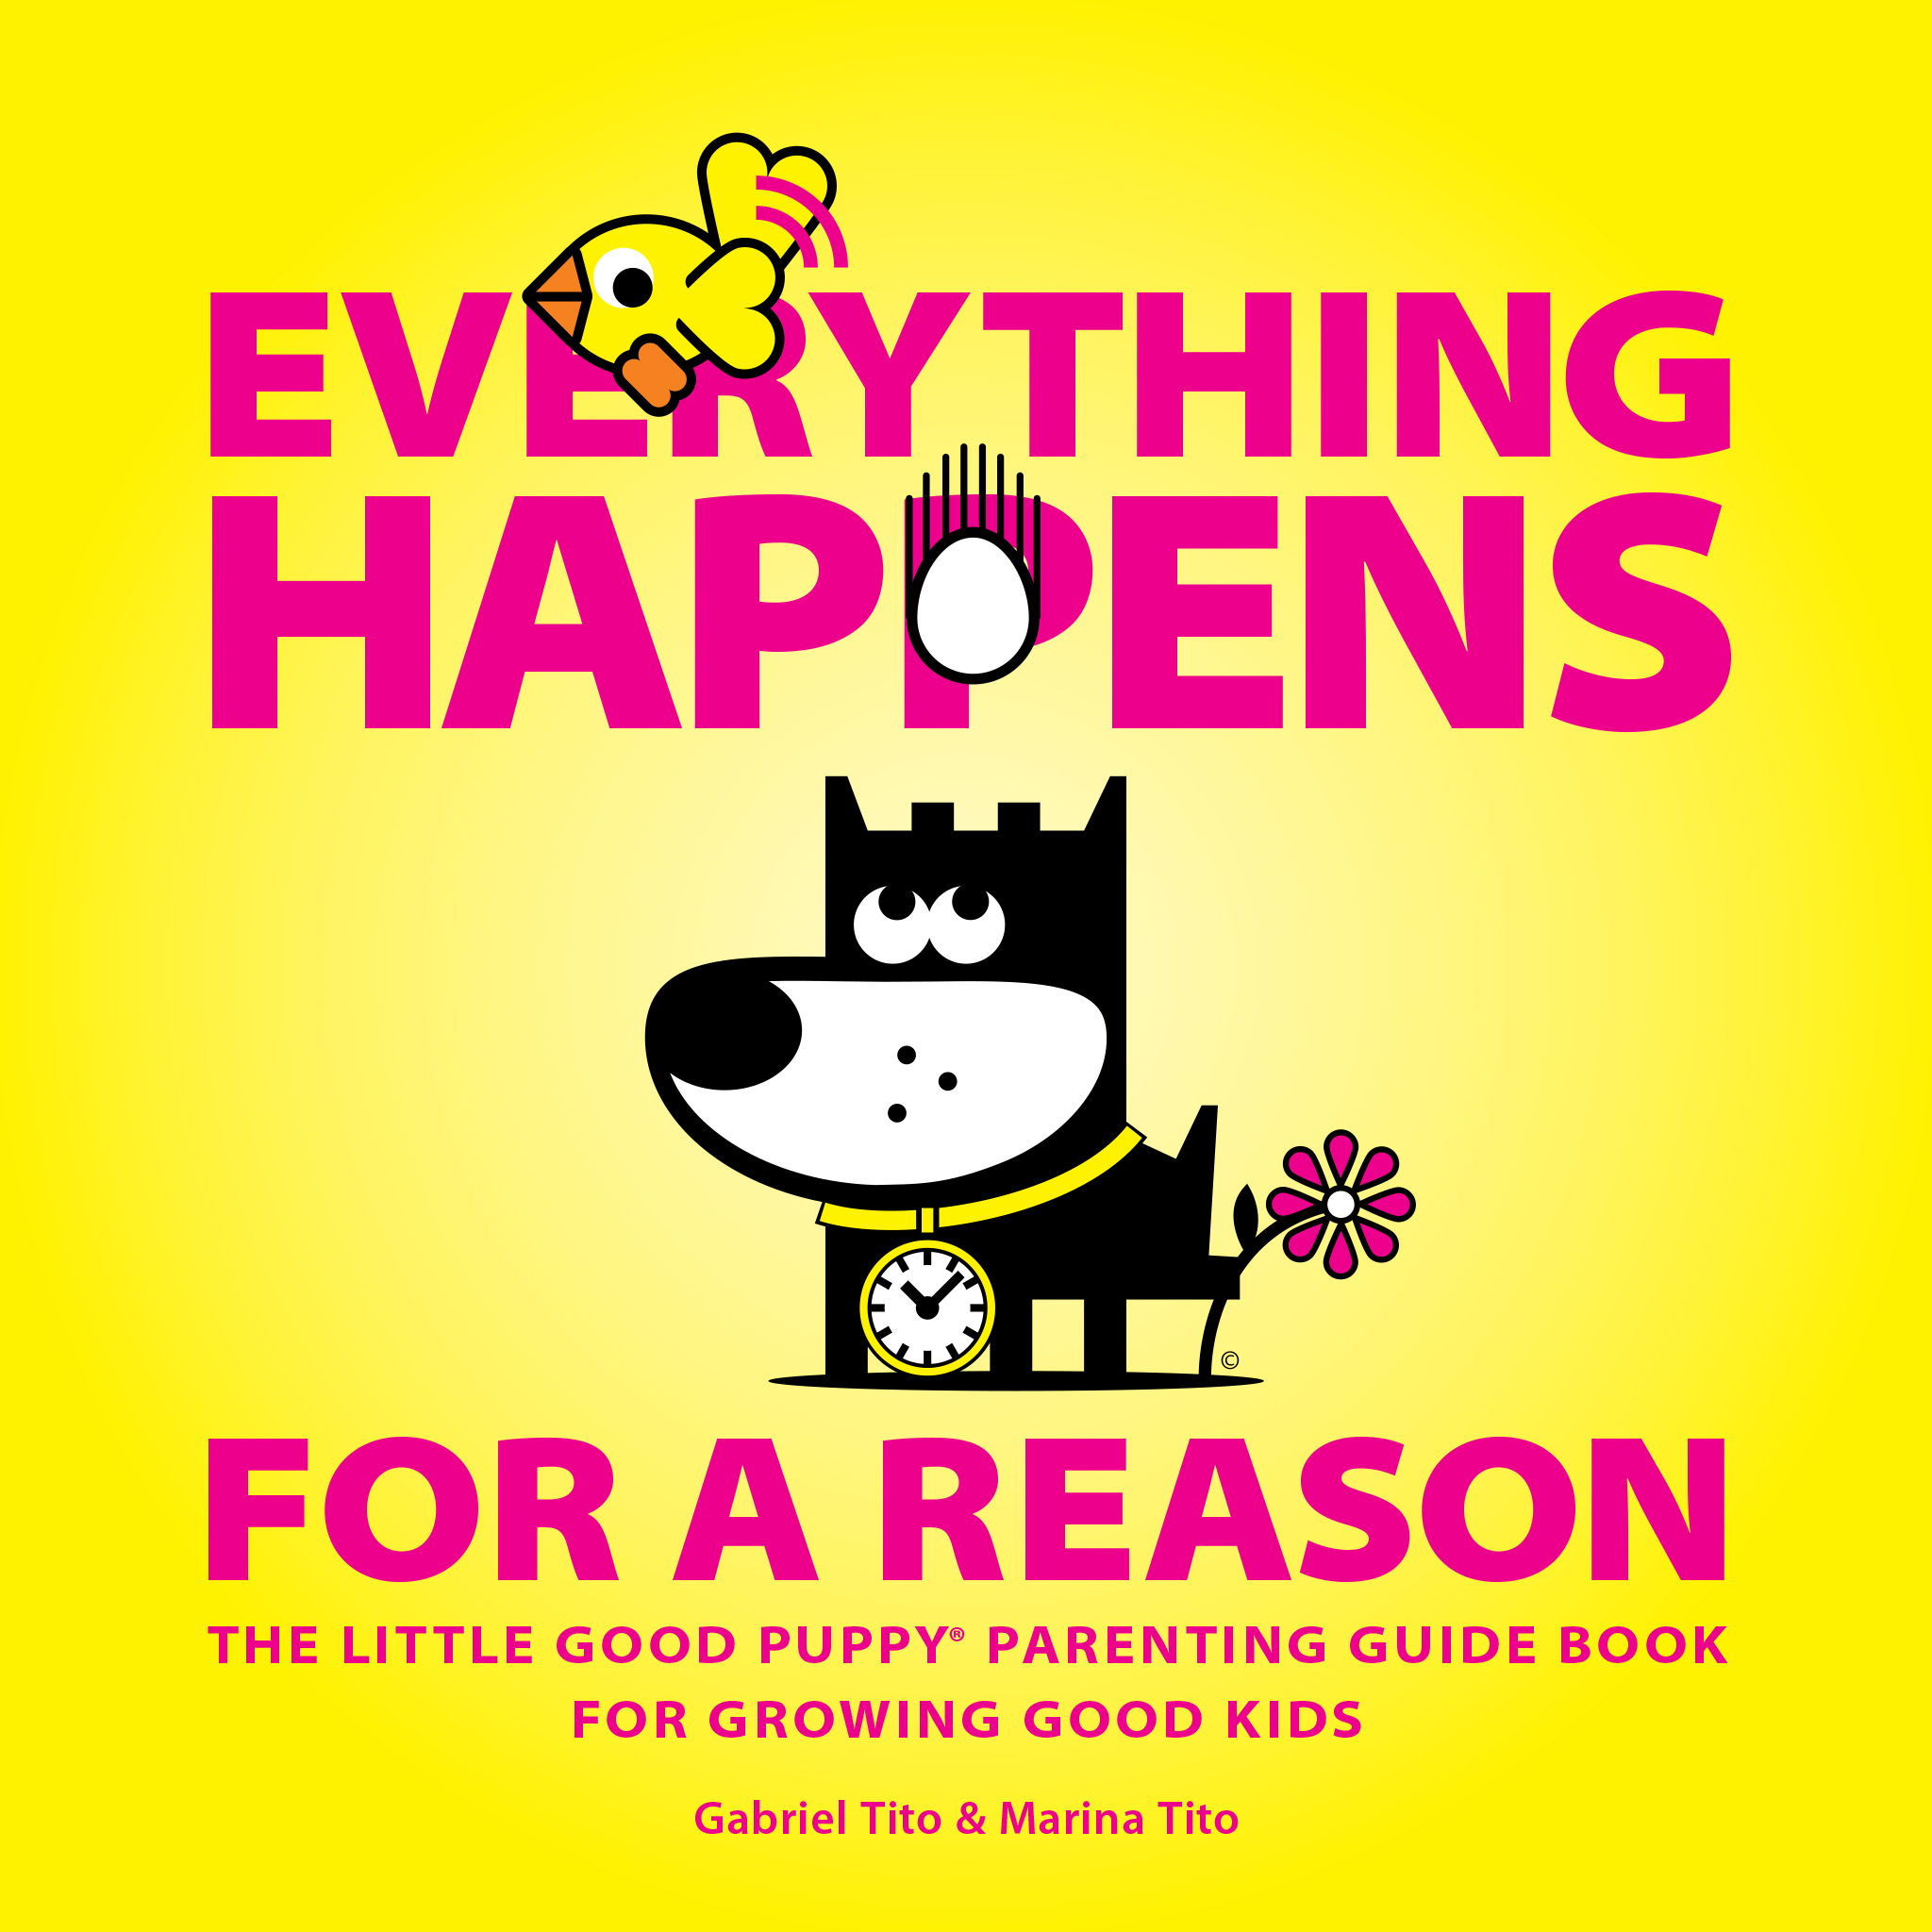 The Little Guide Book For Growing Good Kids: EVERYTHING HAPPENS FOR A REASON